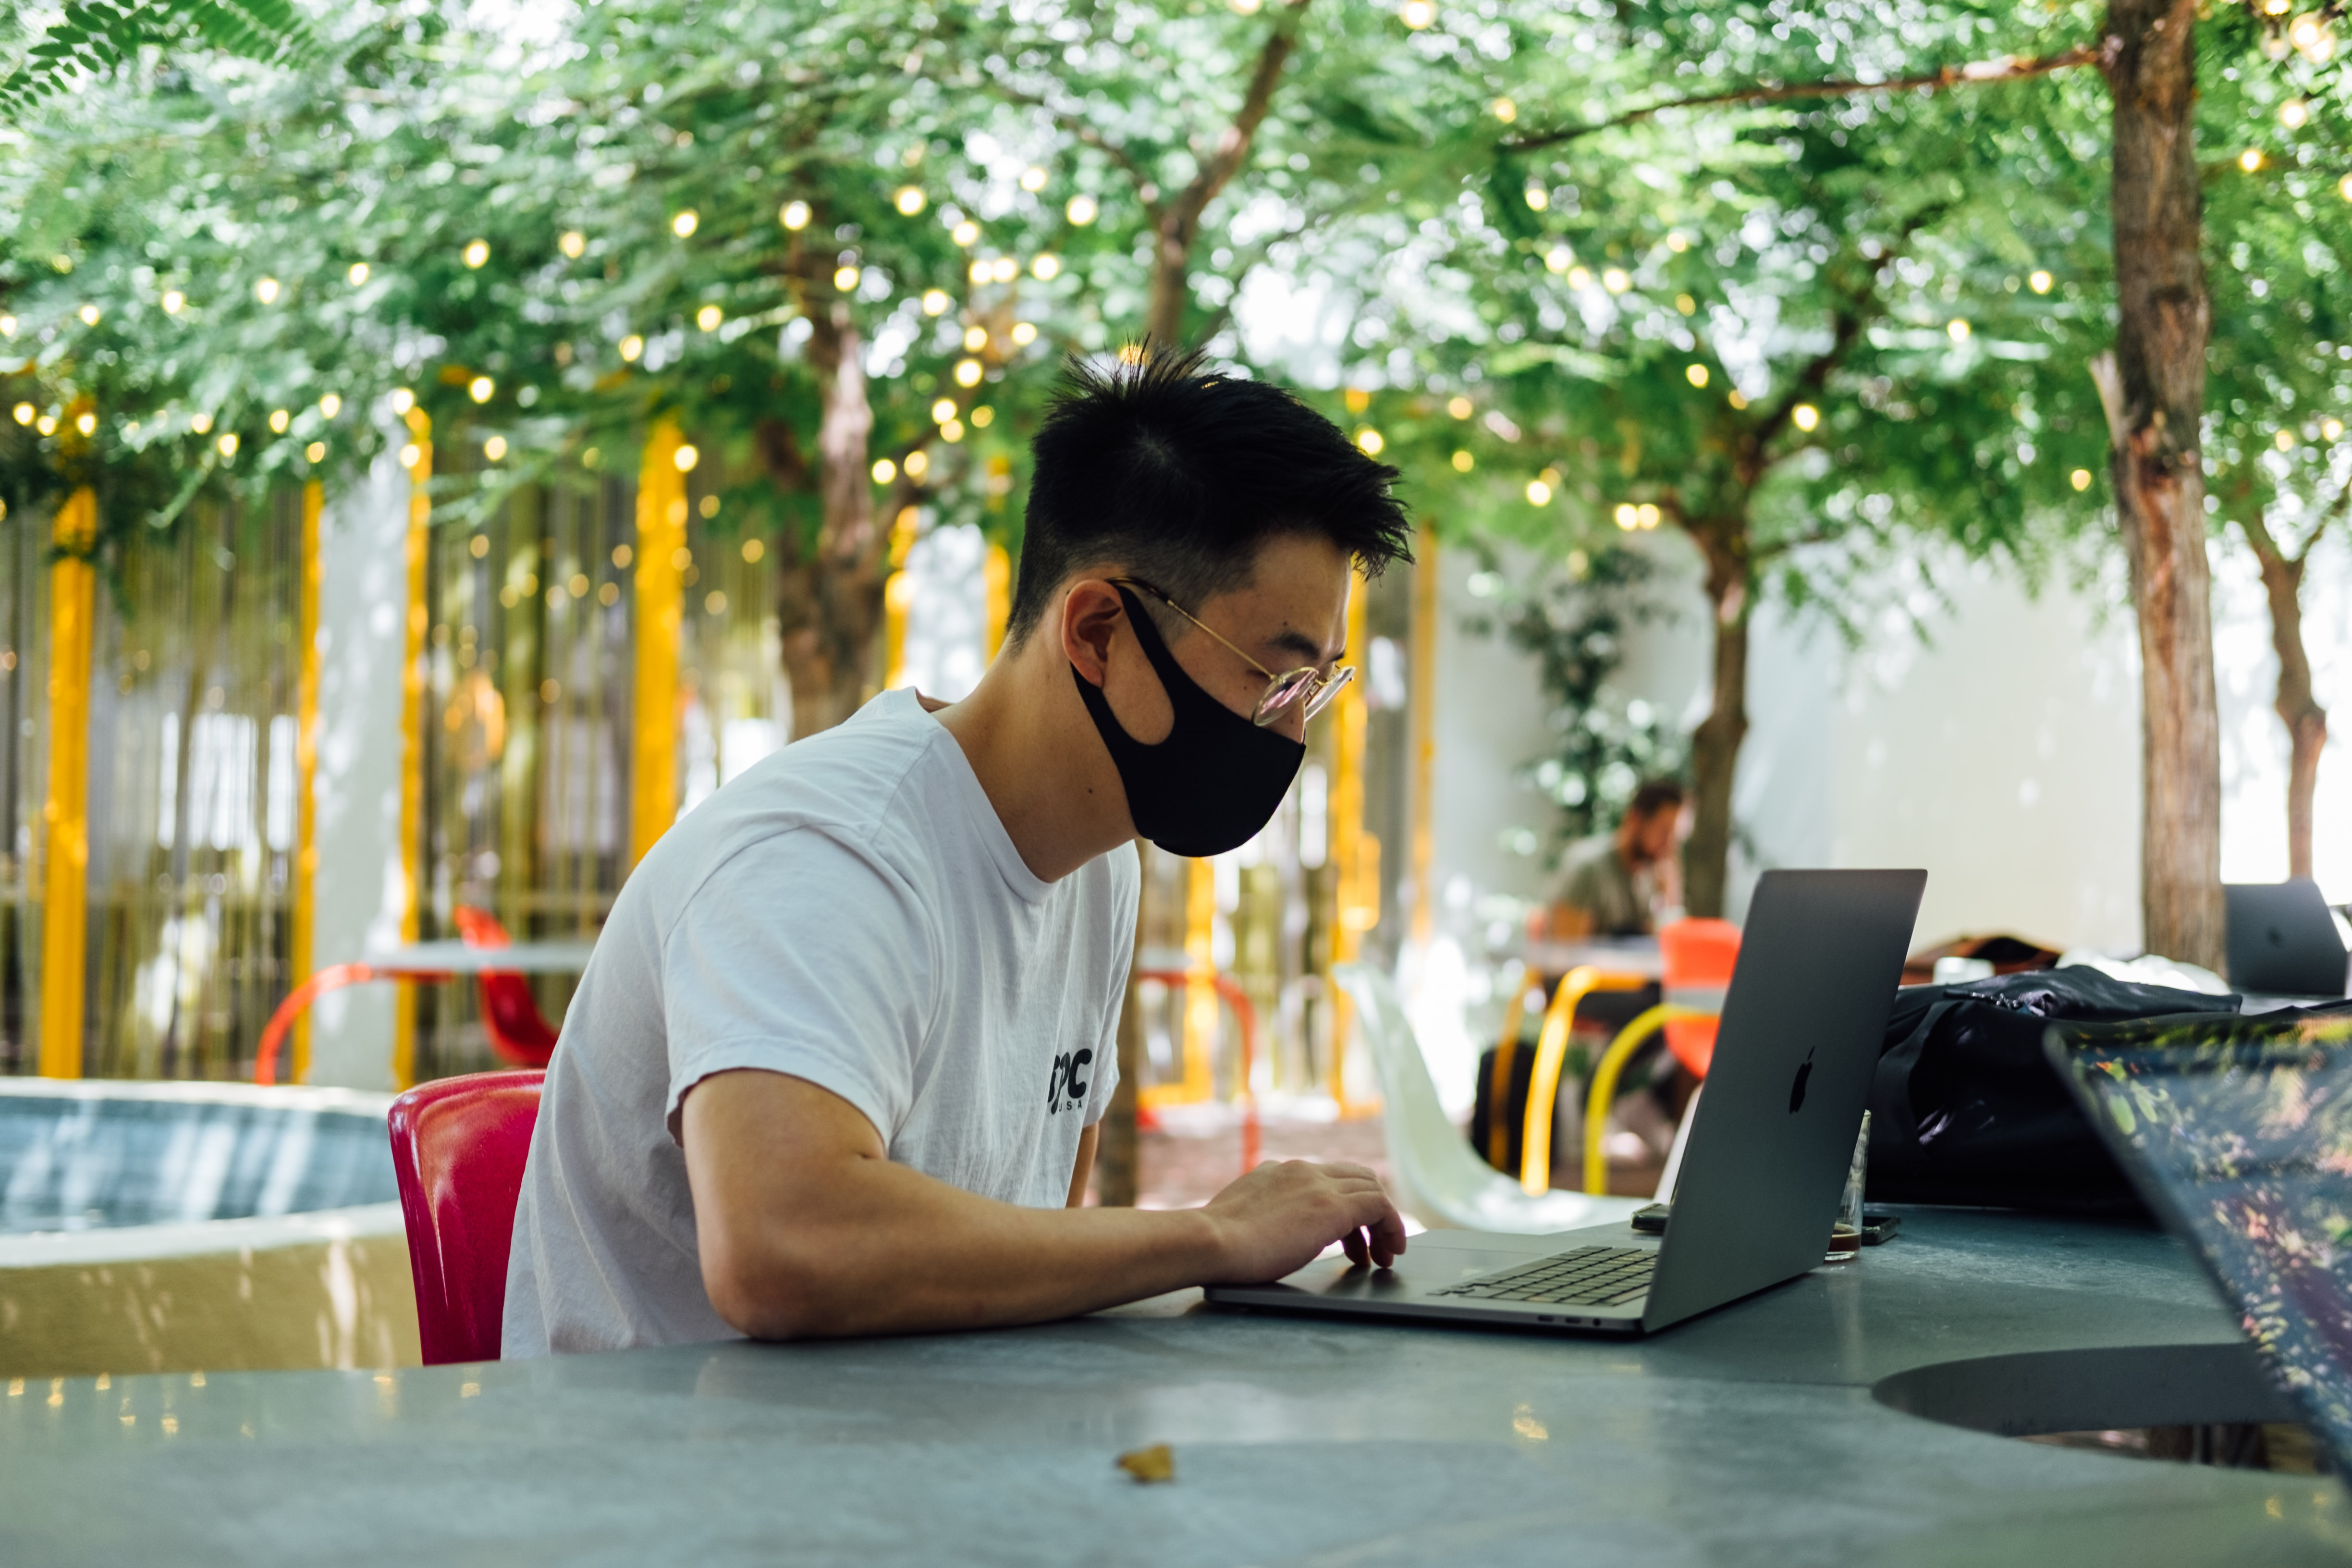 Man in mask working on laptop at outdoor table; image by Paul Hanaoka, via Unsplash.com.